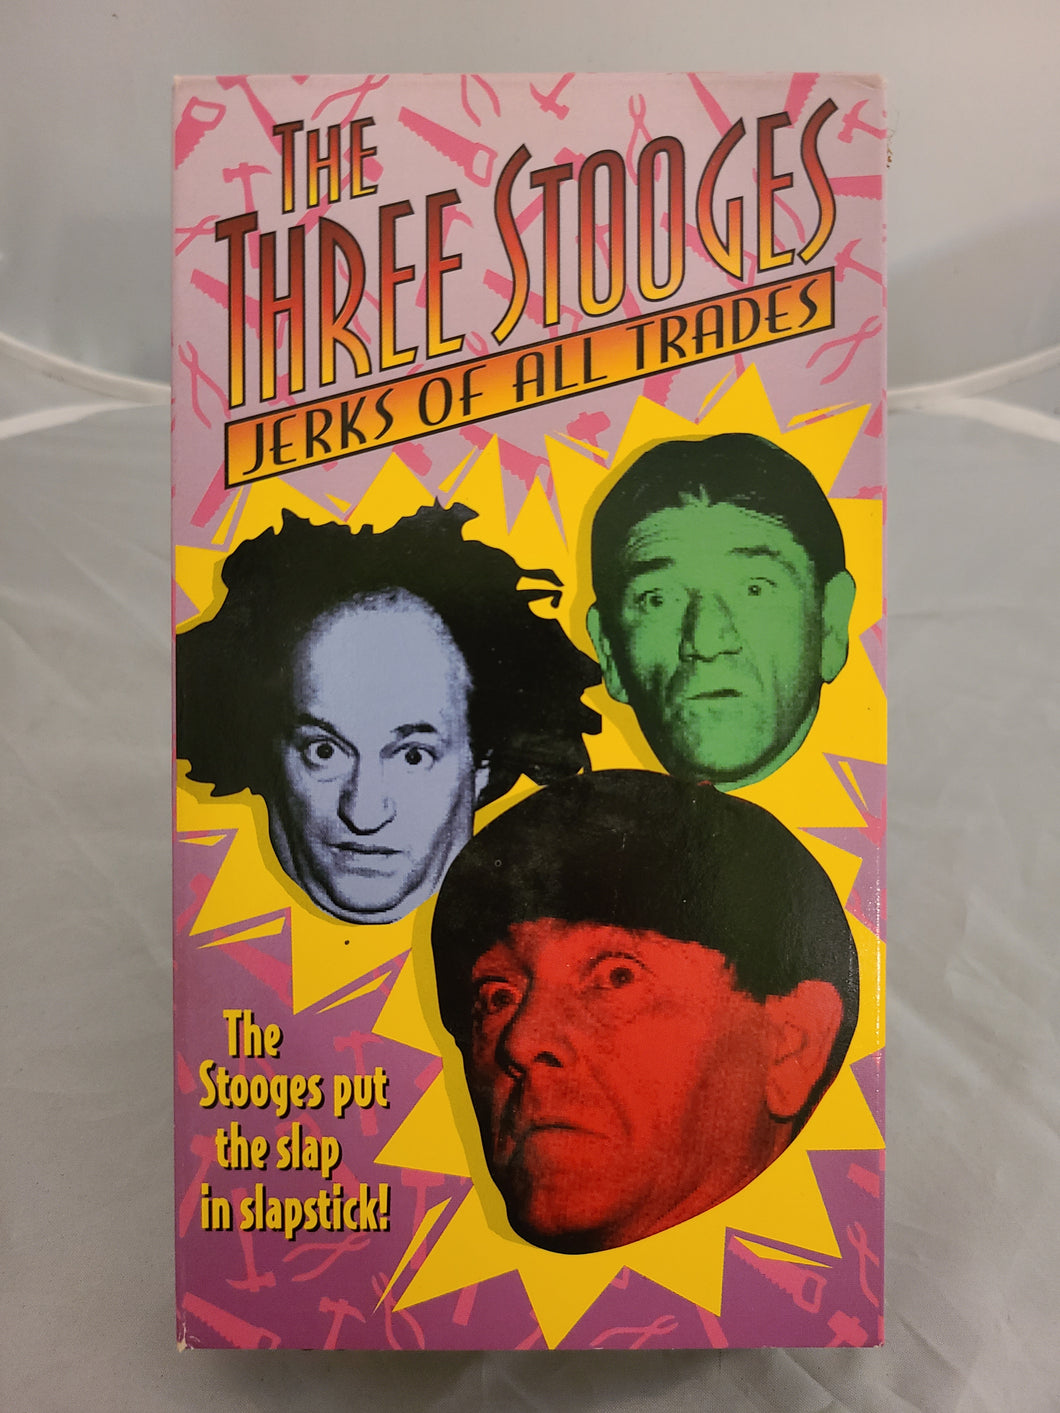 The Three Stooges: Jerks of all Trades VHS